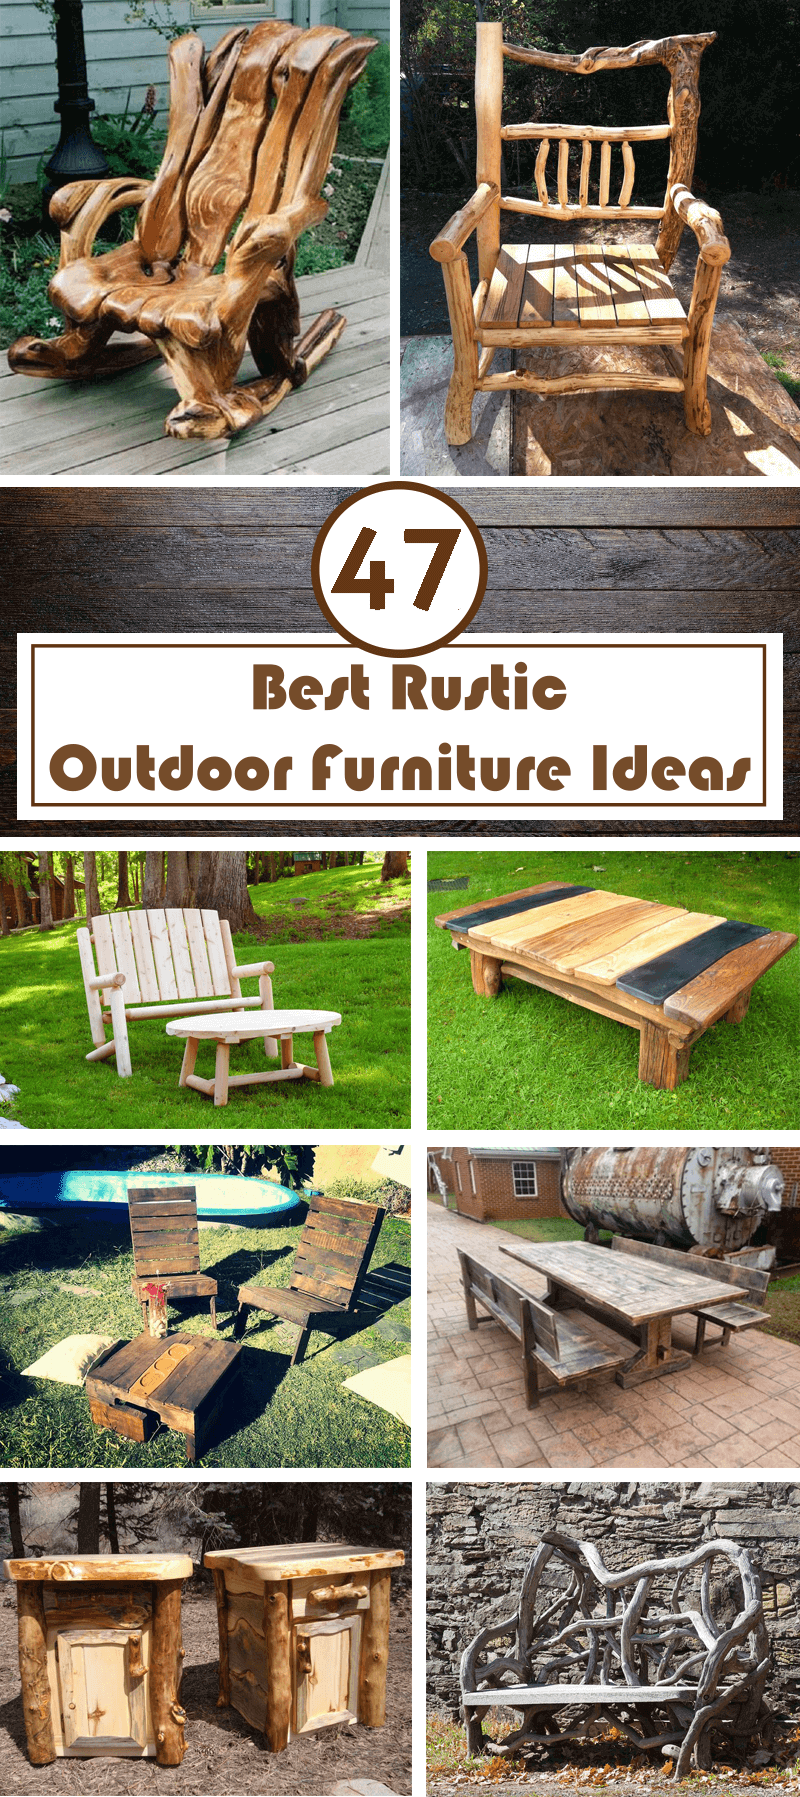 47 Best Rustic Outdoor Furniture Ideas And Designs Interiorsherpa